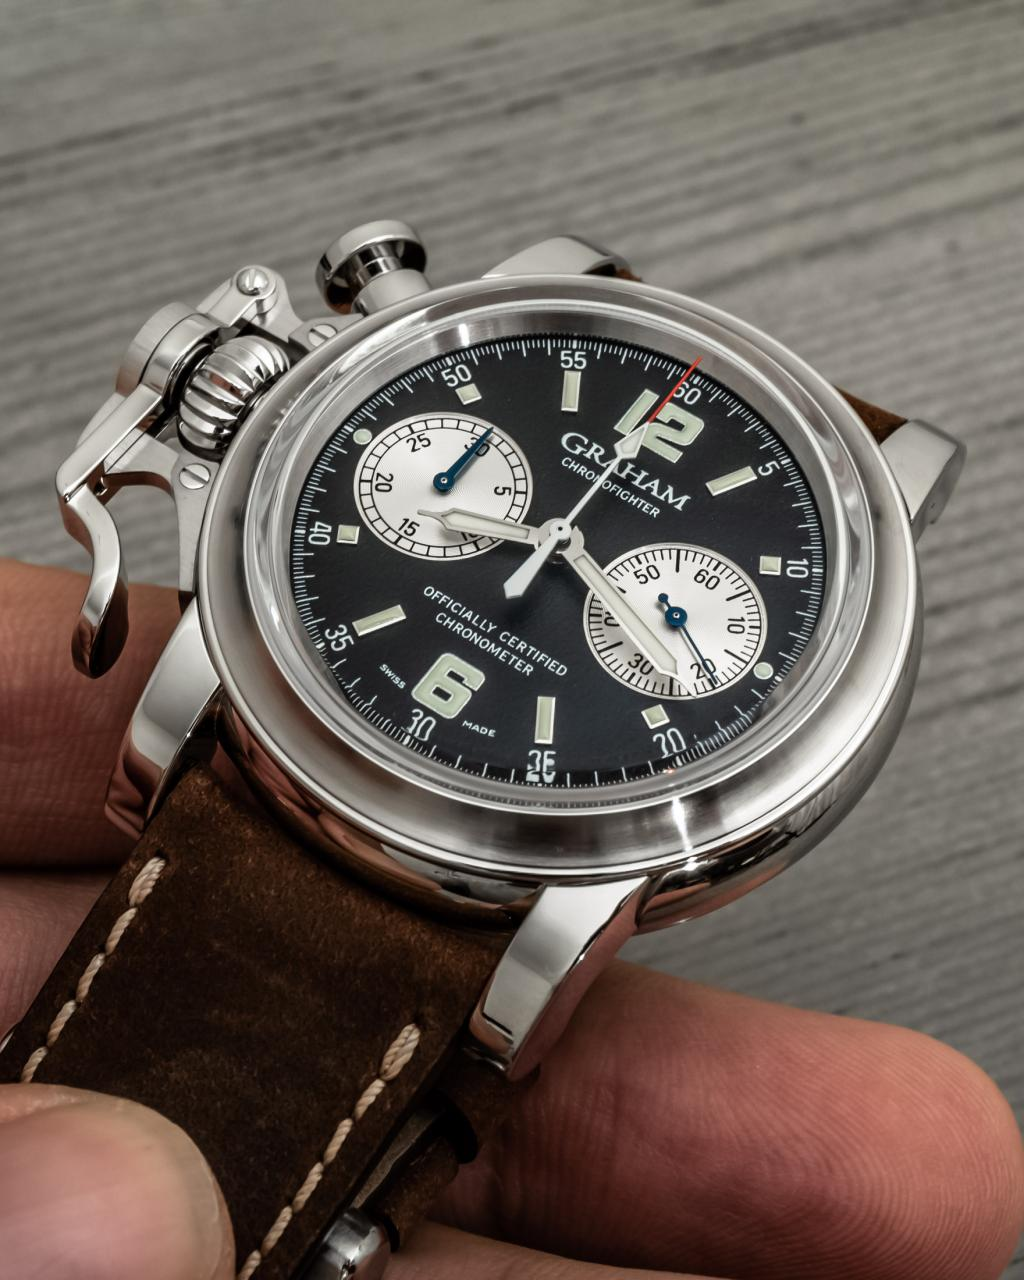 Graham Chronofighter Vintage 25th Anniversary Limited-Edition fake Watches